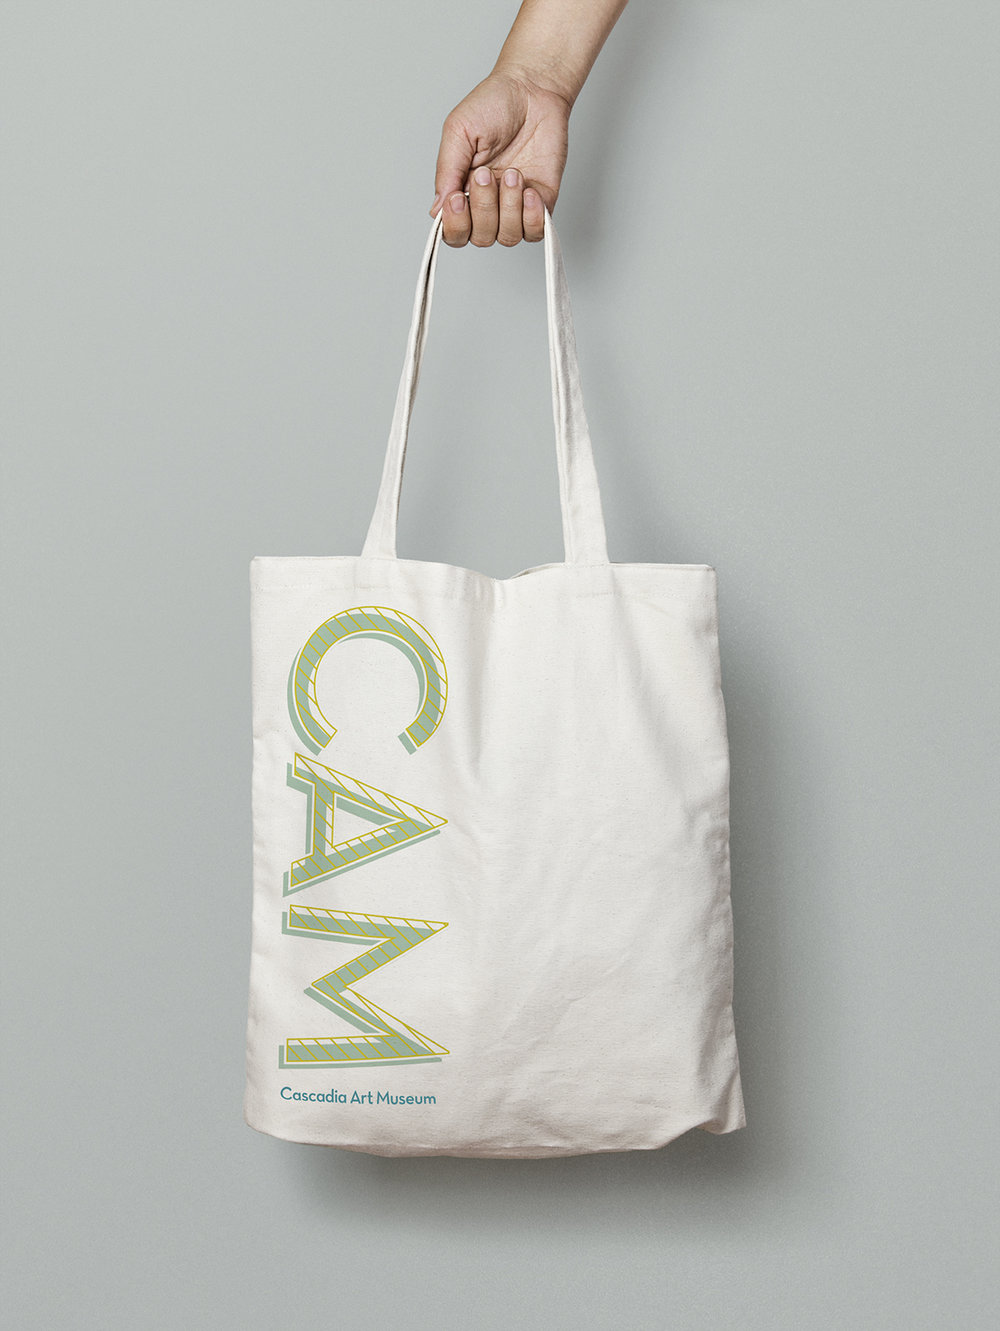 Gift tote bag concepts